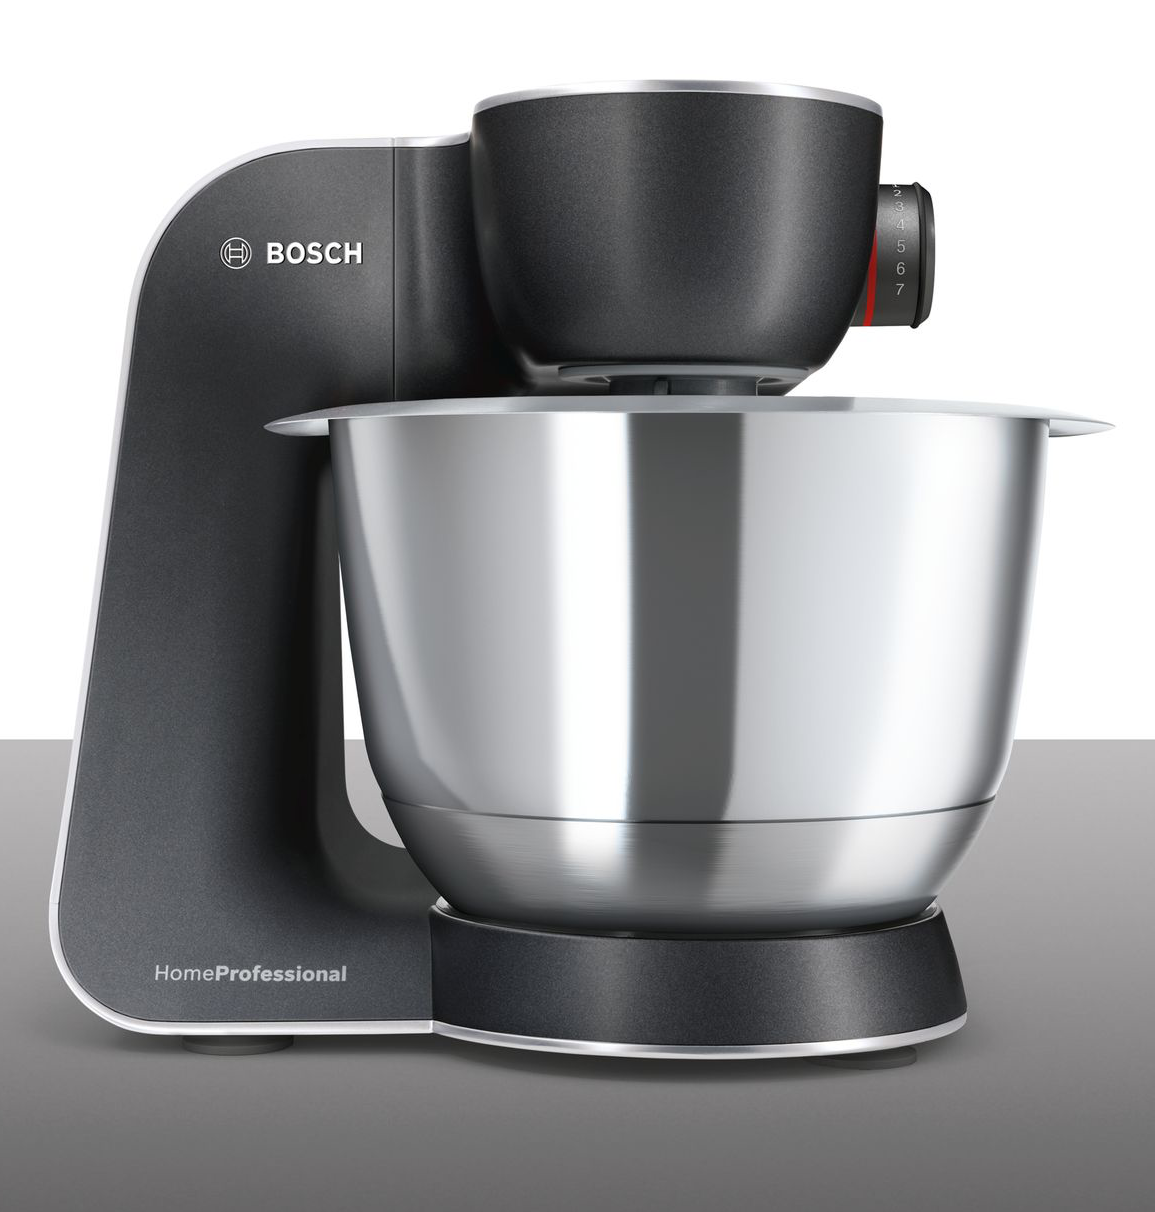 Bosch Mum 5 Kitchen Mixer Household Kitchen Machine Kitchen